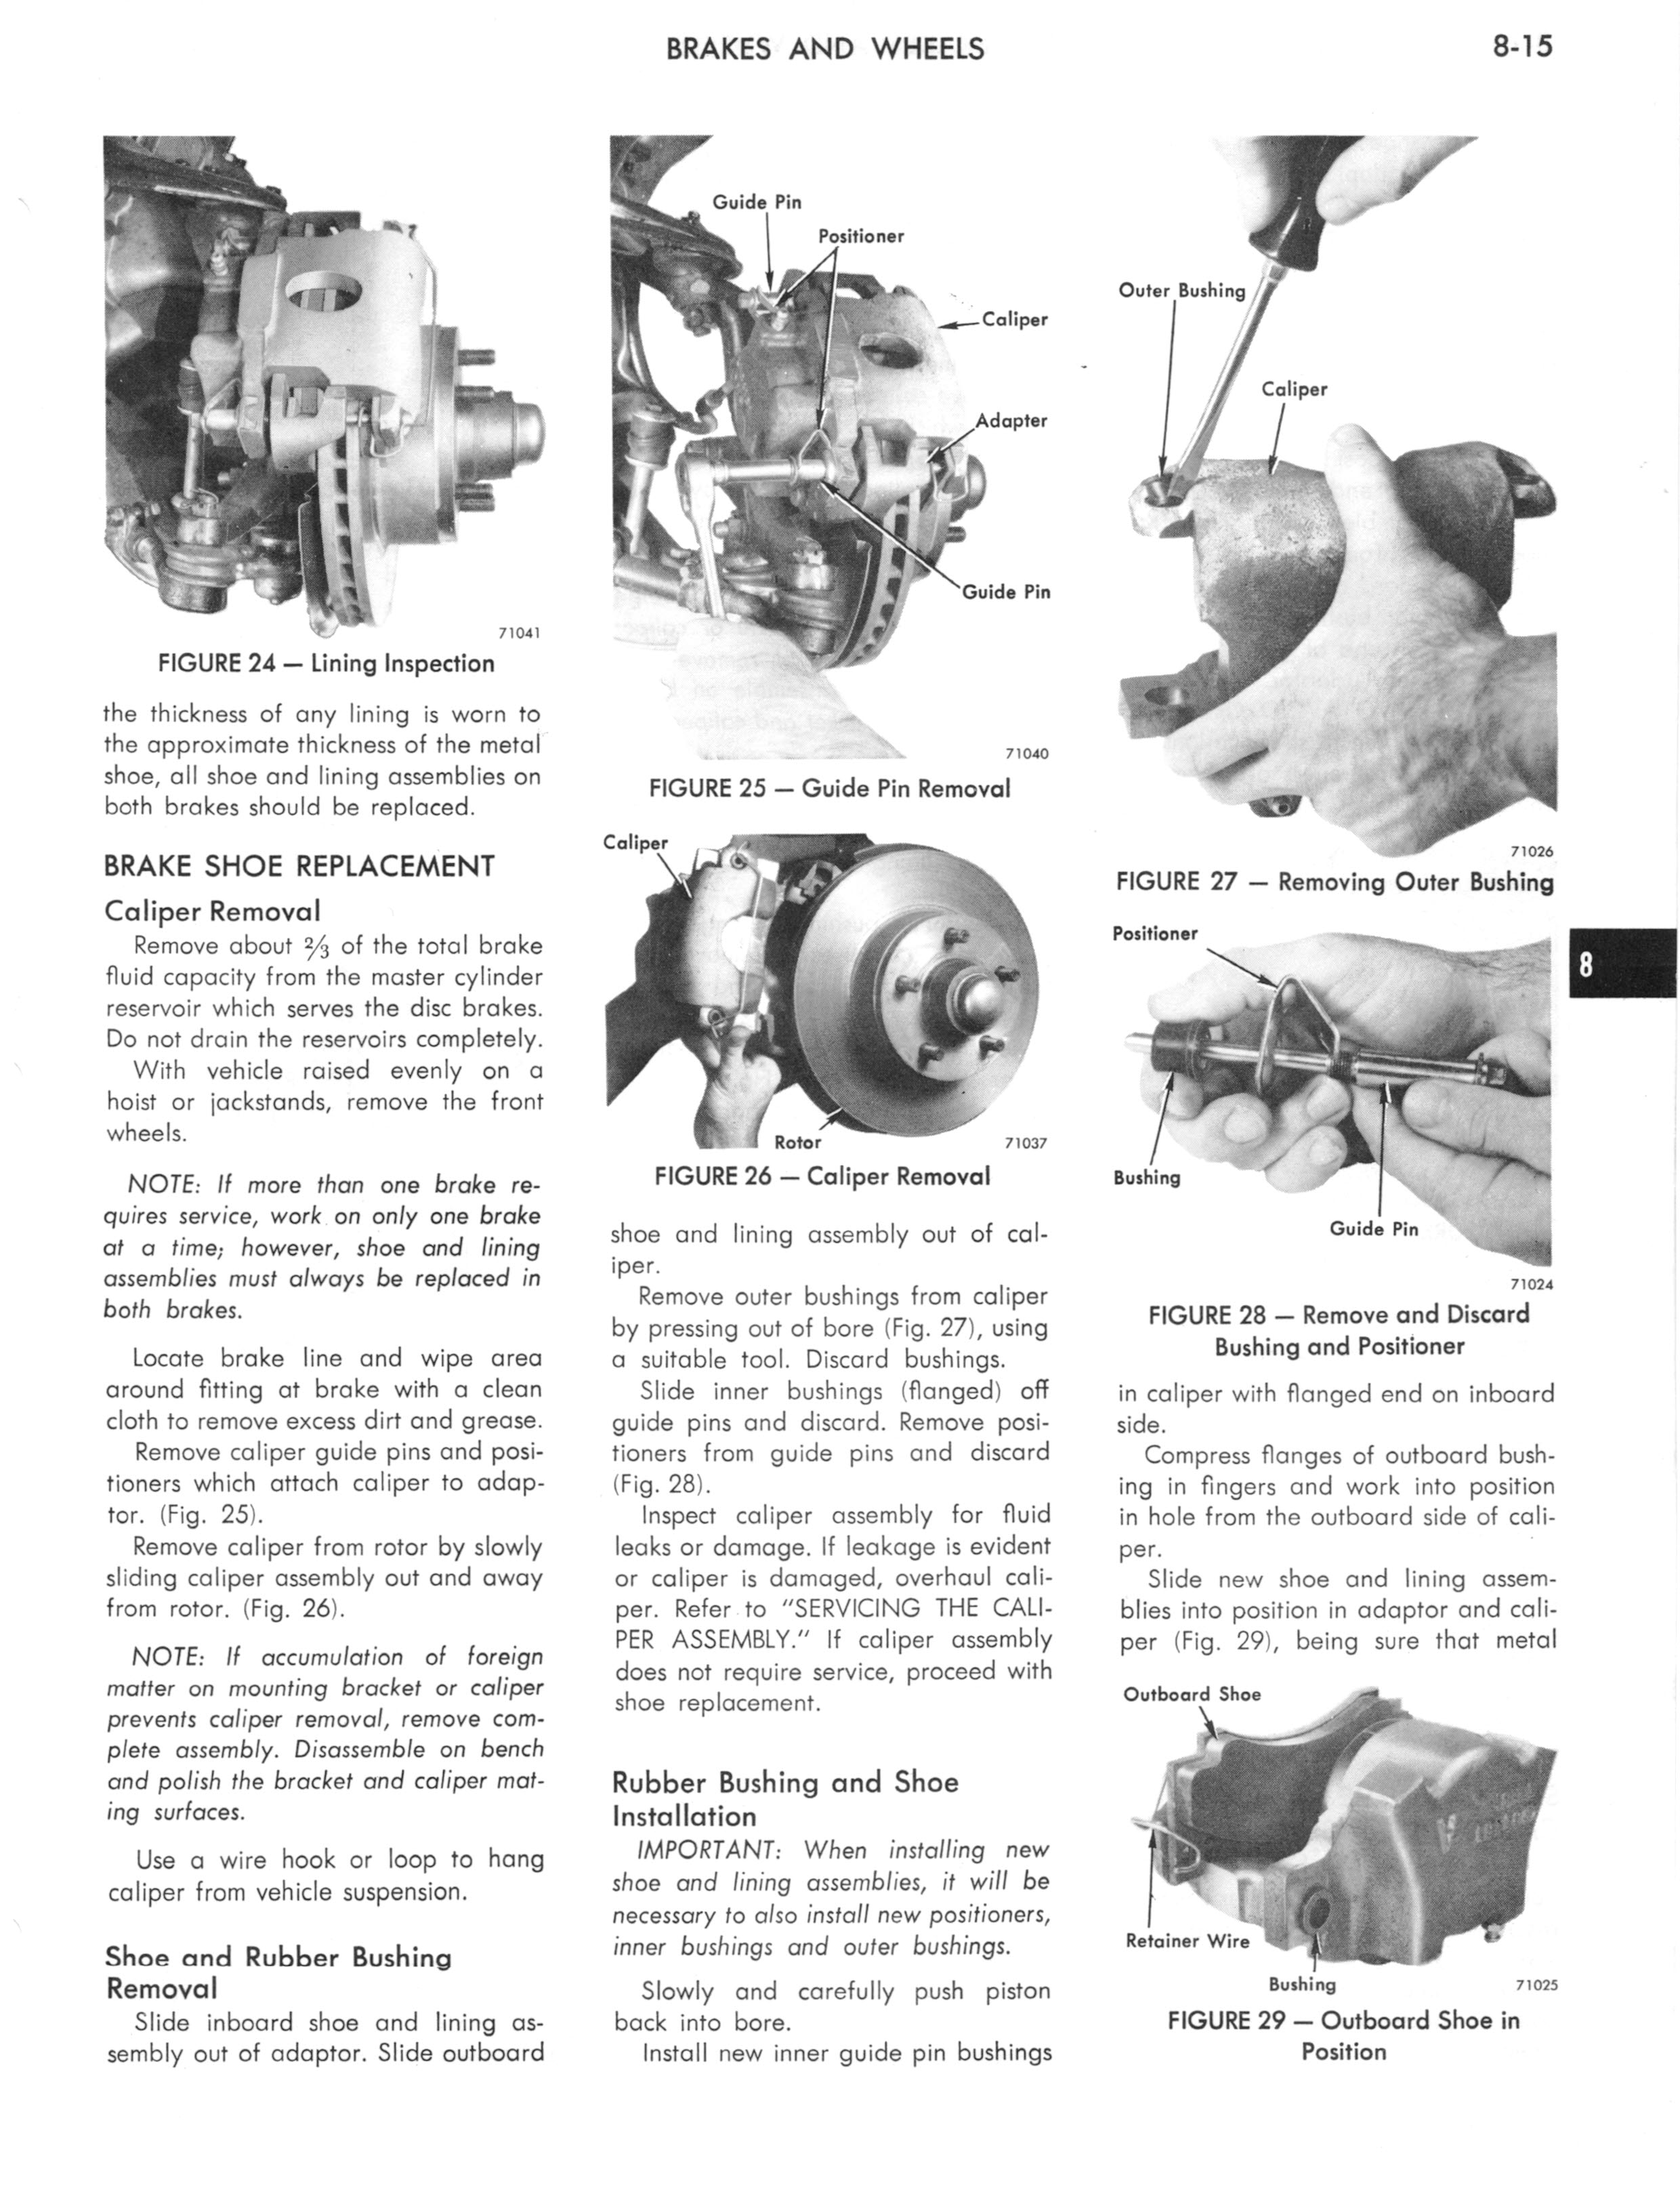 1973 AMC Technical Service Manual page 265 of 487